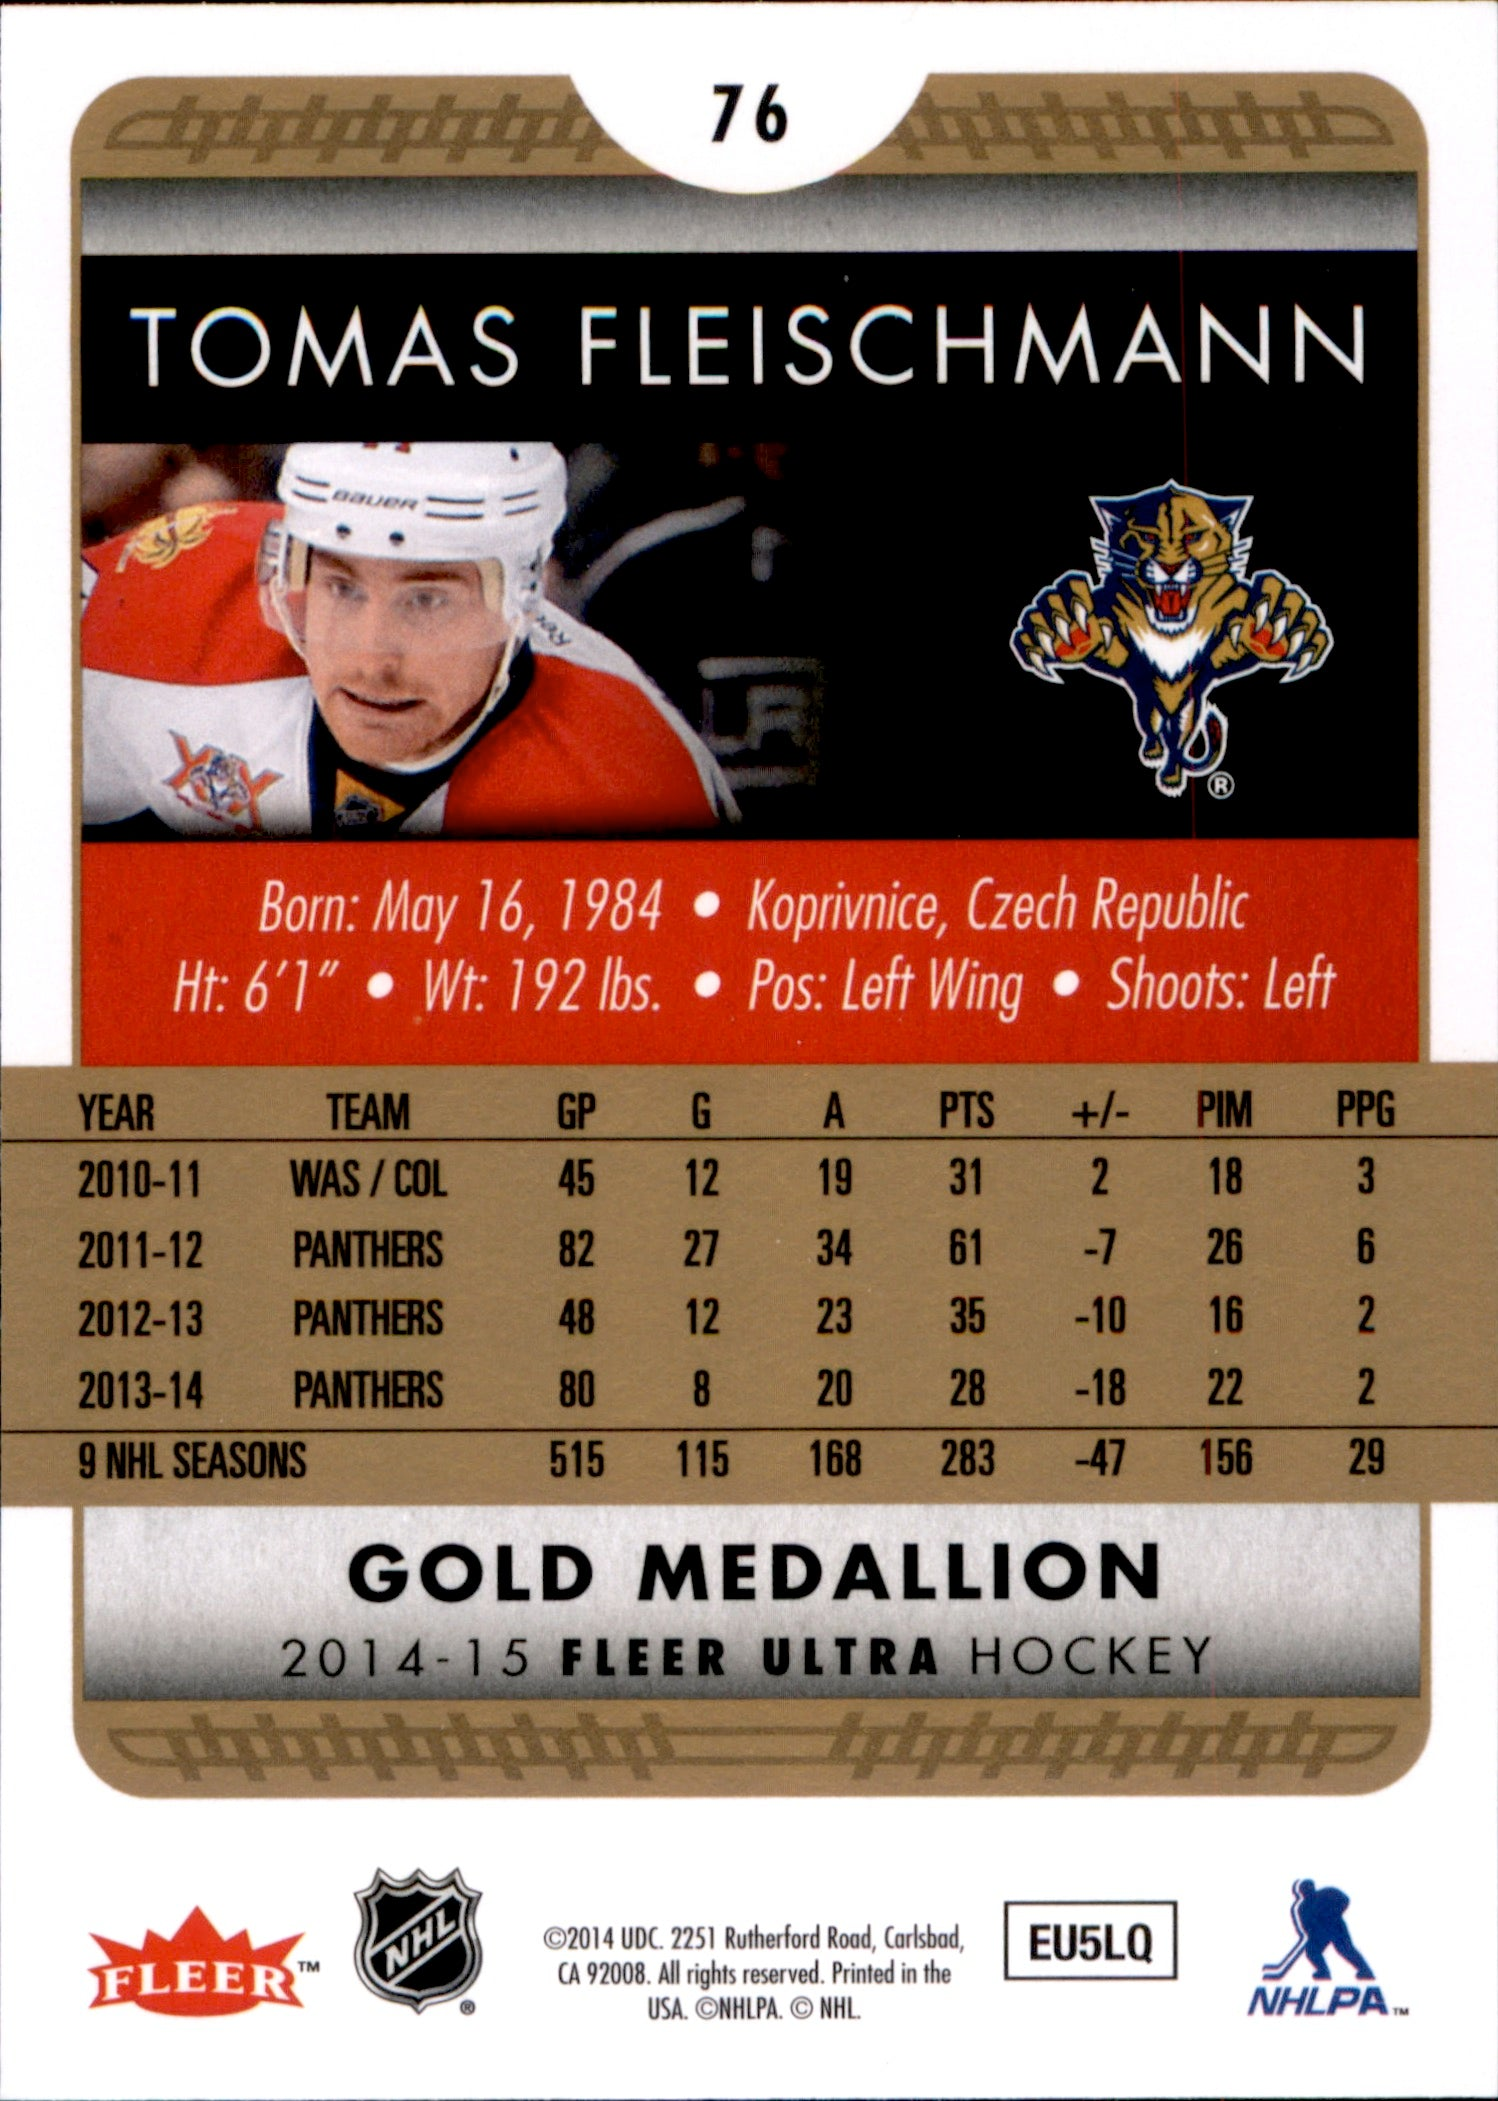 2014-15 Fleer Ultra Gold Medallion #076 Tomas Fleischmann | Eastridge Sports Cards